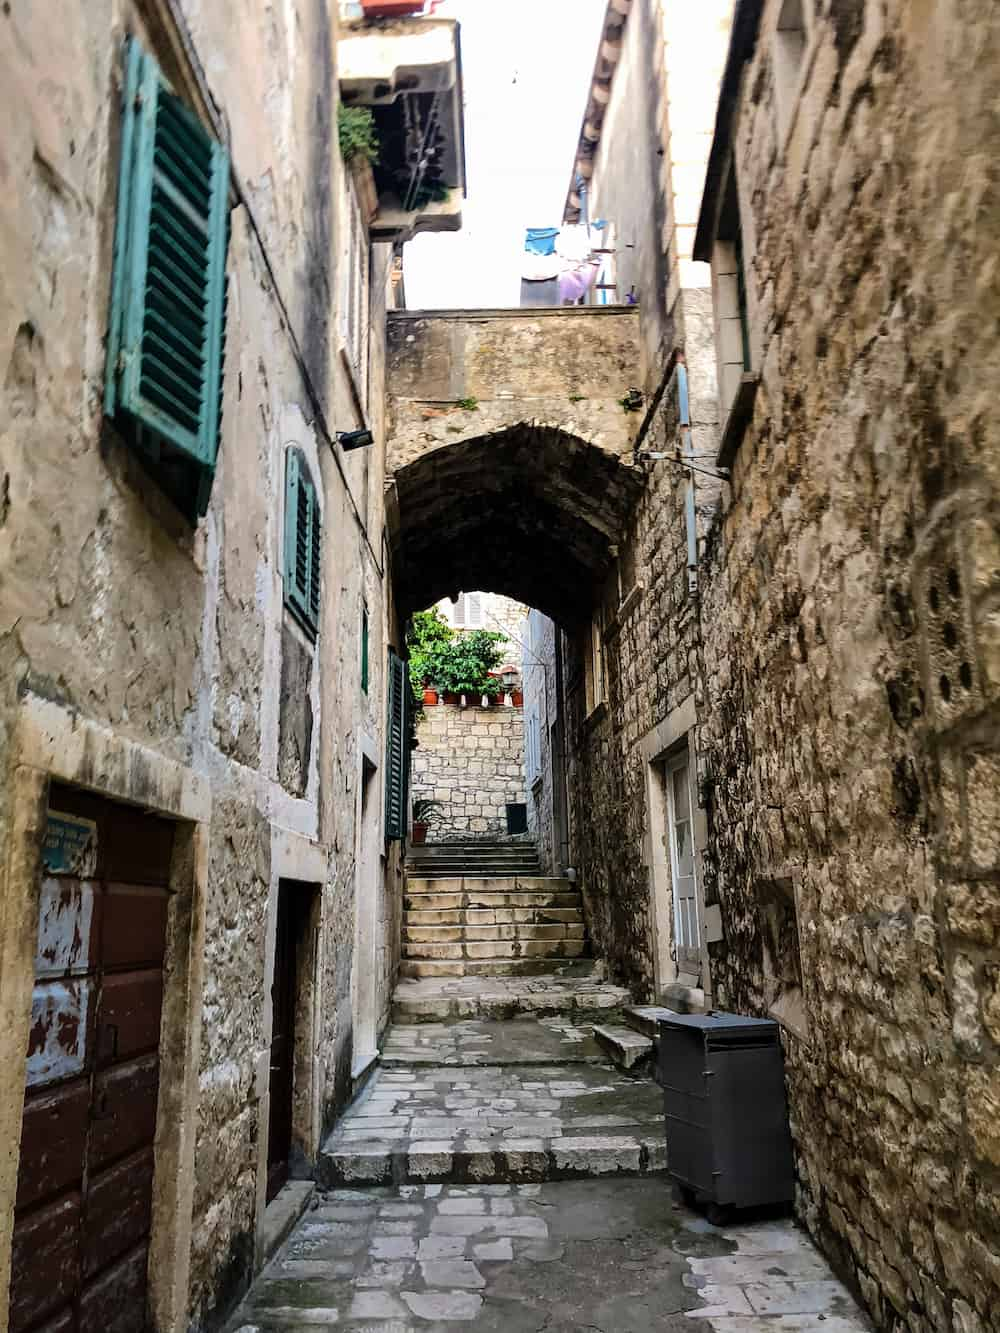 Image of Korcula Old town streets